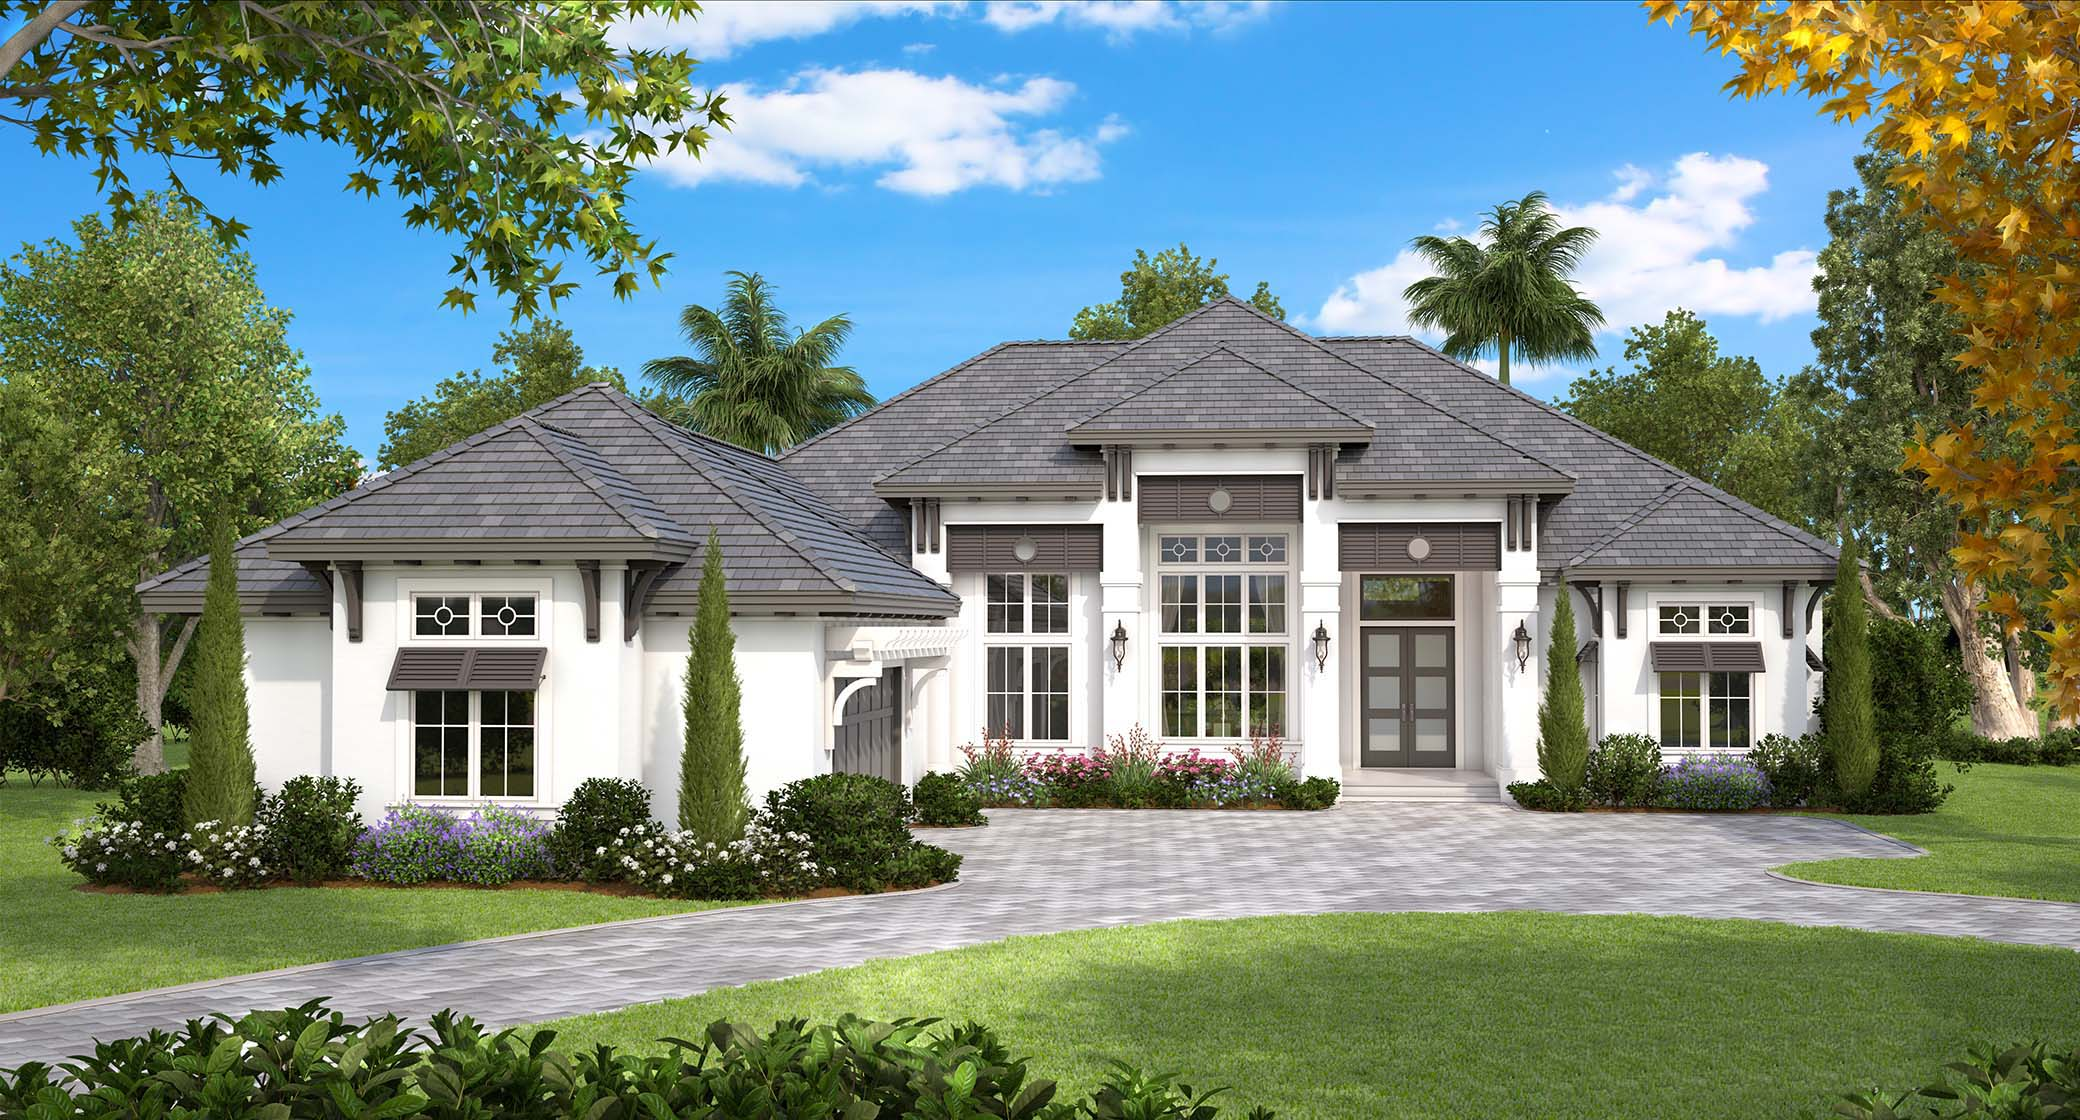 Coastal European House Plan #175-1130: 4 Bedrm, 4089 Sq Ft